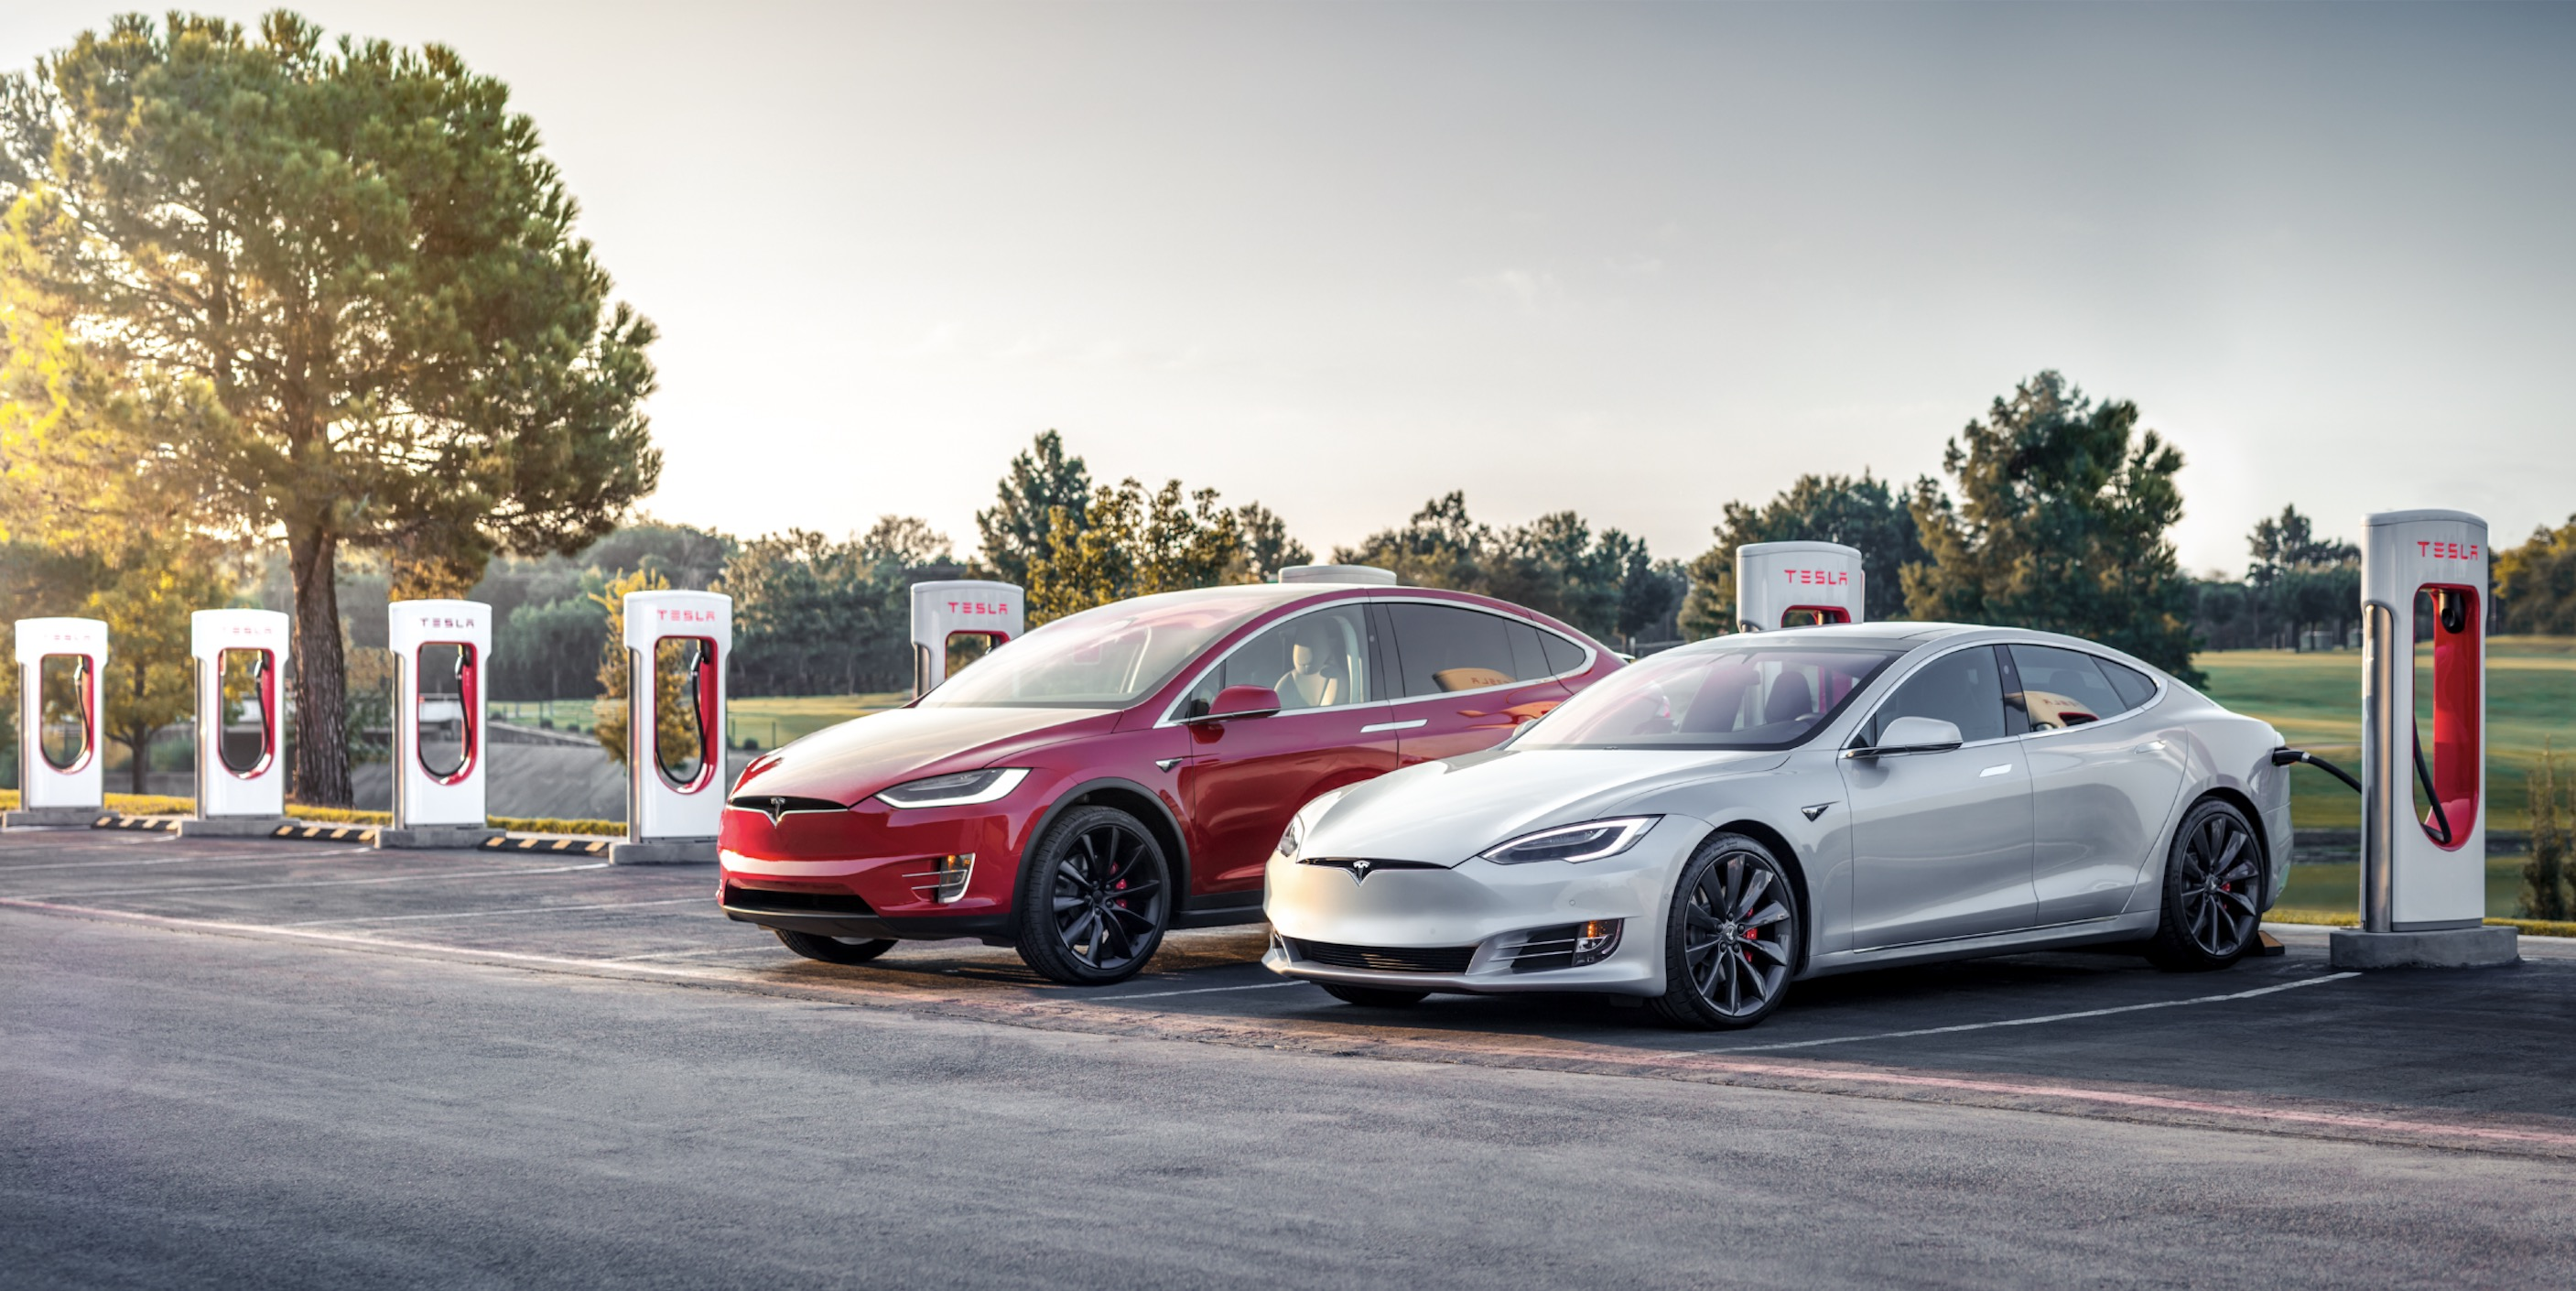 Tesla extends referral program in last demand boost for the end of the year